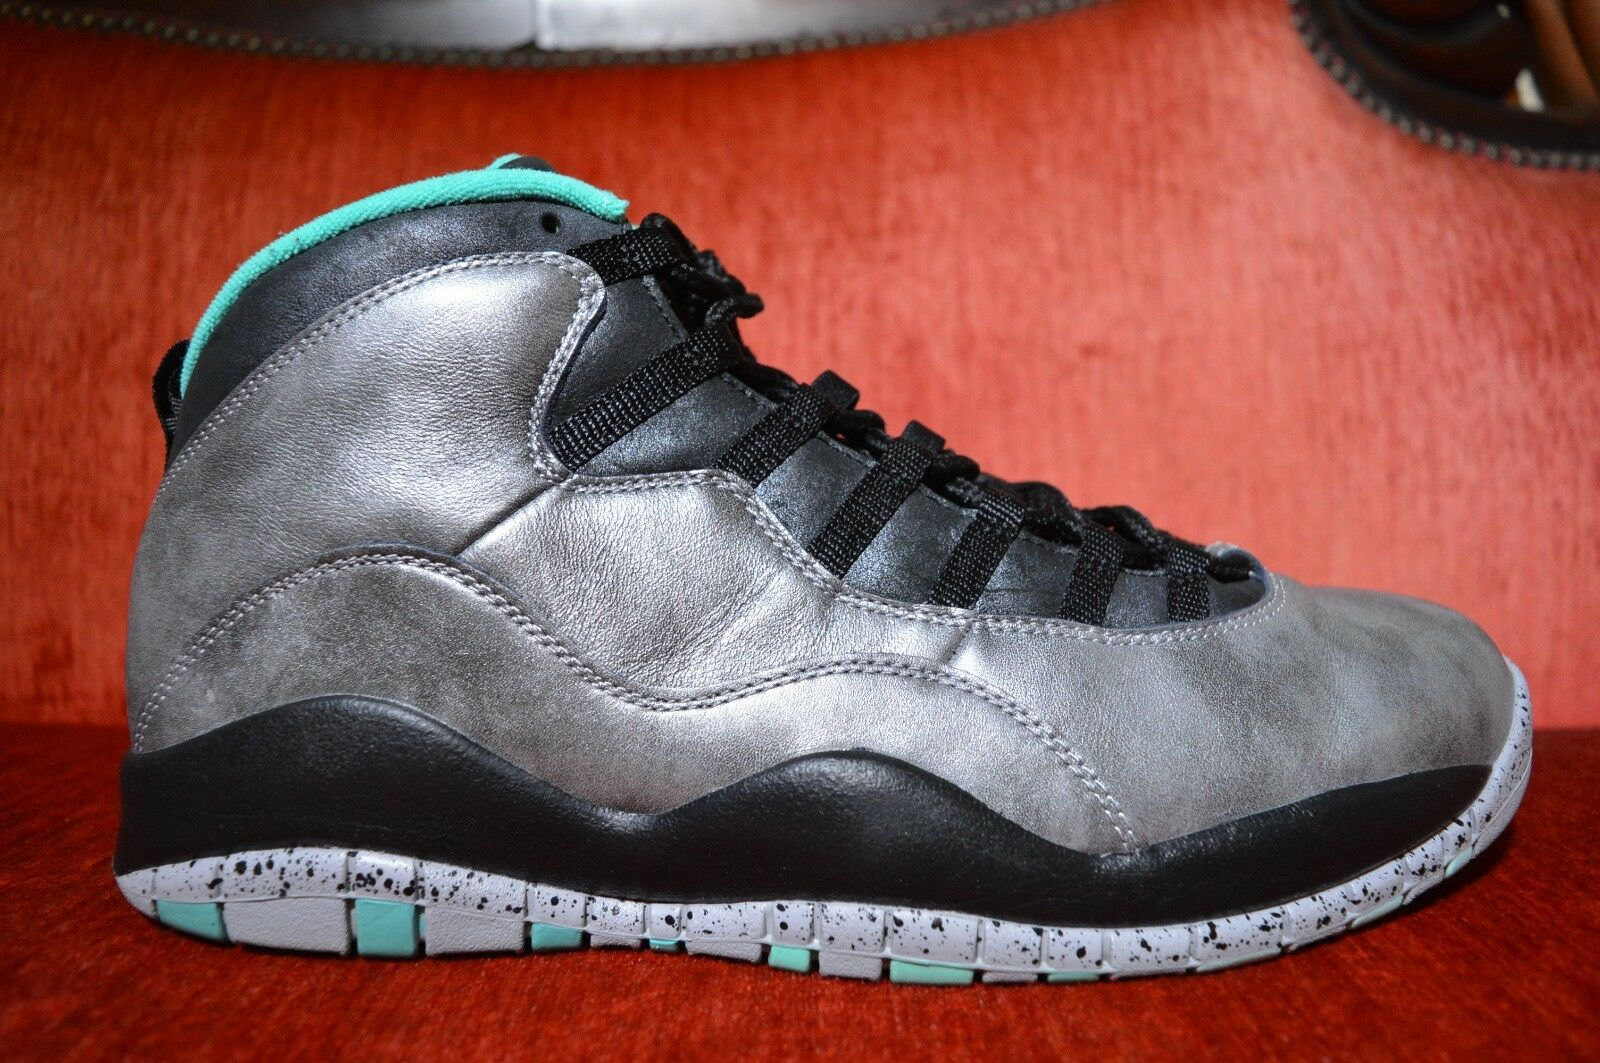 WORN 2X NIKE Air JORDAN 10 RETRO X 30TH LADY LIBERTY Steel Powder 705178-045